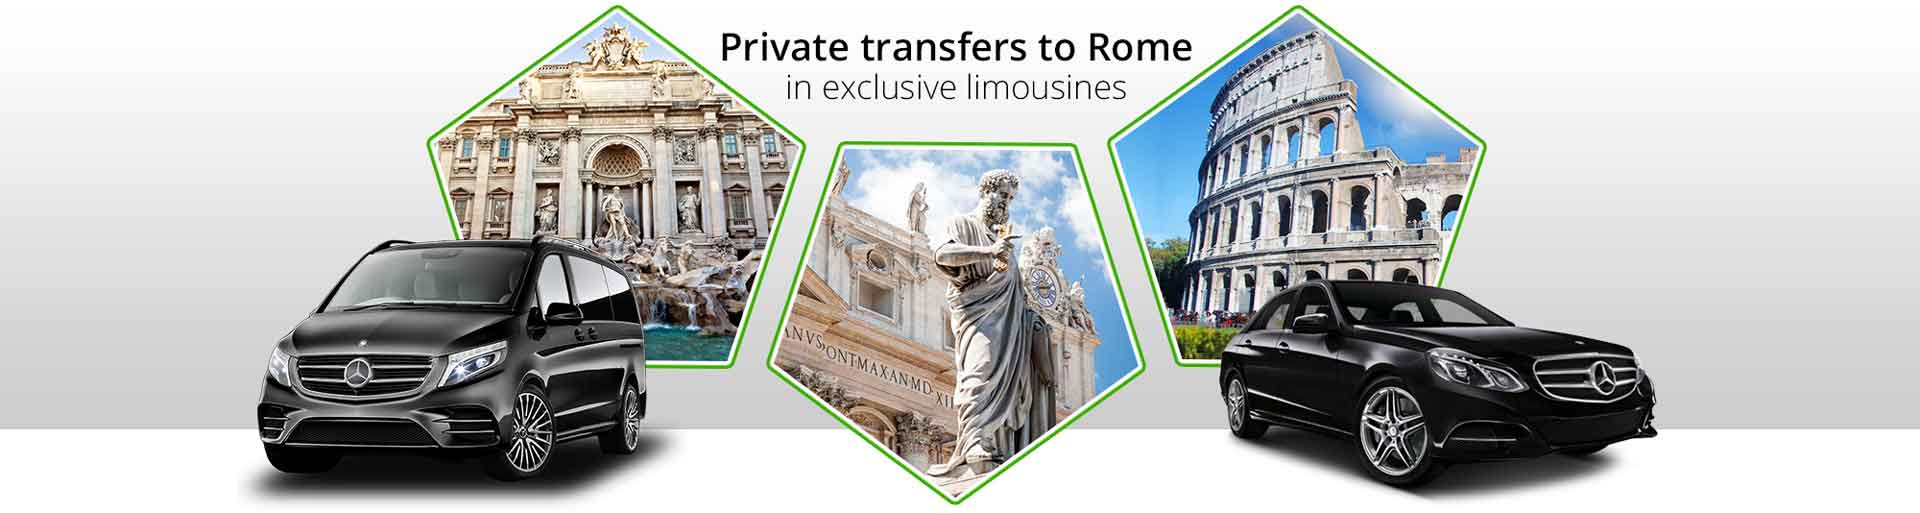 Private transfer to Rome in exclusive limousines